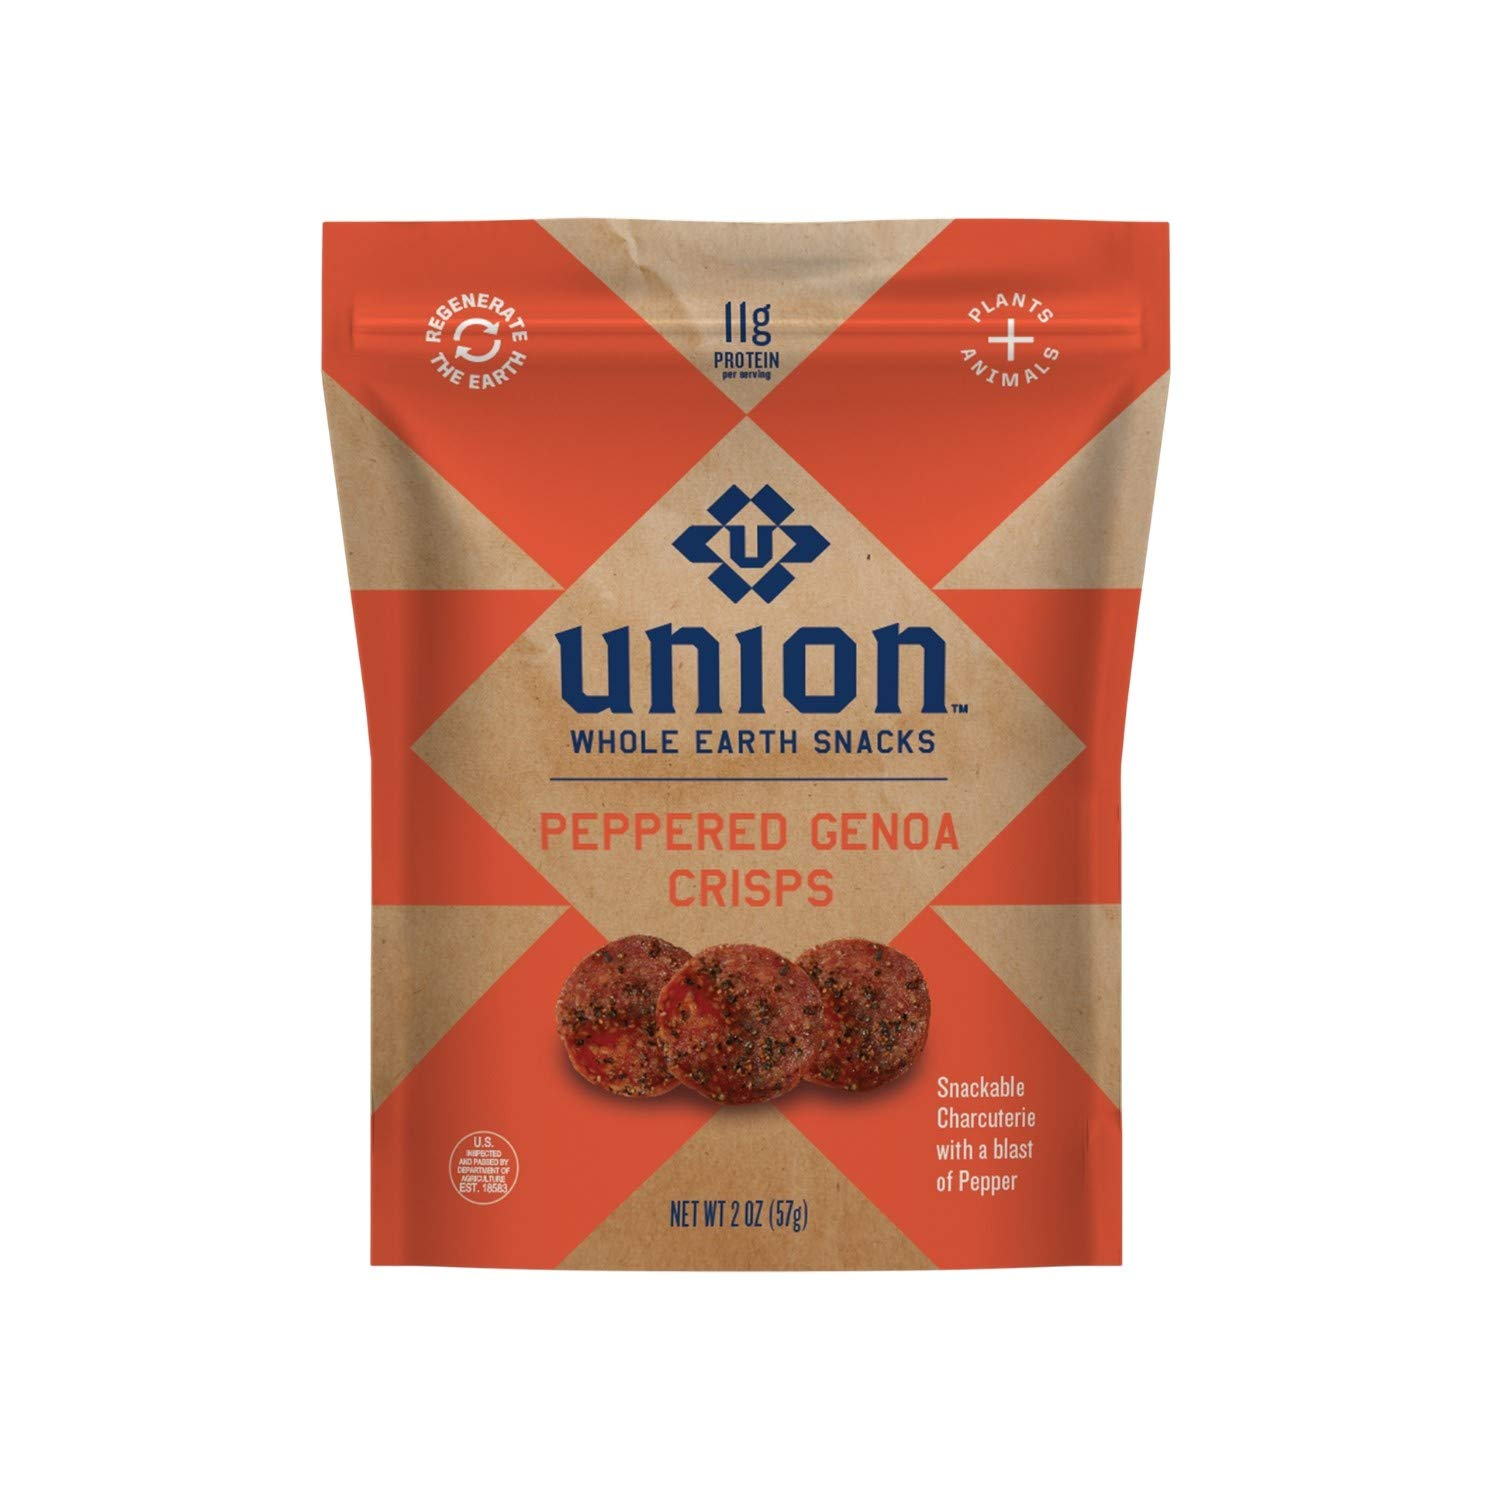 UNION Peppered Genoa Salami Charcuterie Crisps - Whole Earth Snacks - Healthy Food, Keto Snacks, High Protein & Gluten Free - Paleo and Keto Diet Friendly - Pack of Two